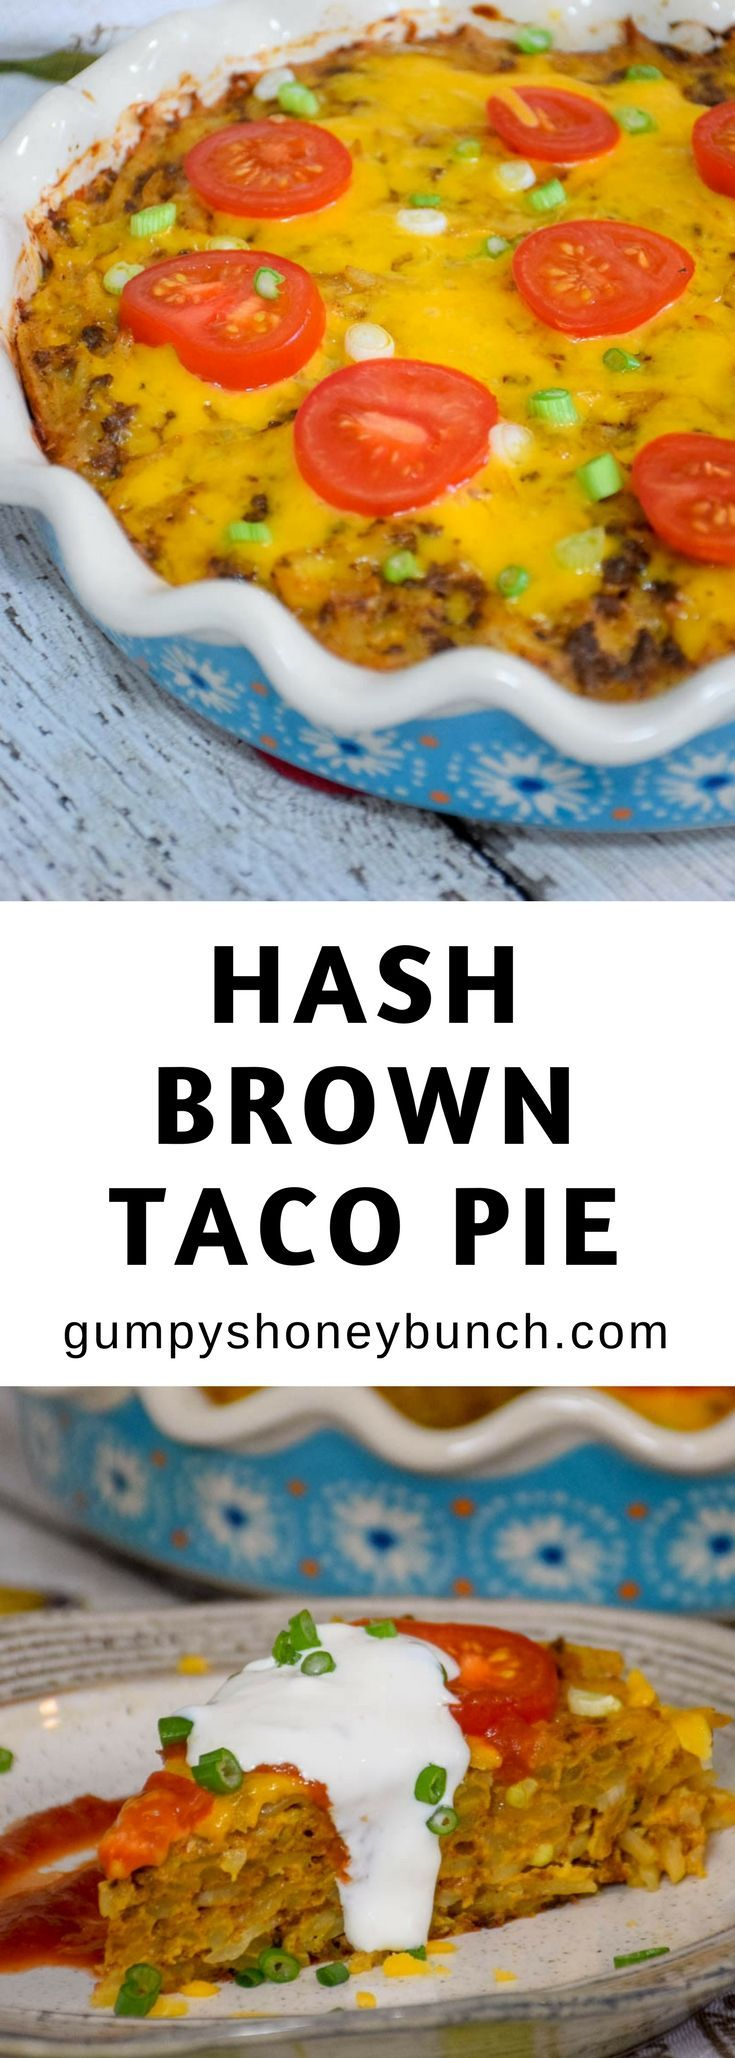 Whether your family is getting together for a holiday brunch, a long weekend, or just because, this Hash Brown Taco Pie is sure to be something that will make their taste buds happy and satisfy their tummies! #SimplyPotatoes #sponsored https://ooh.li/15acef0